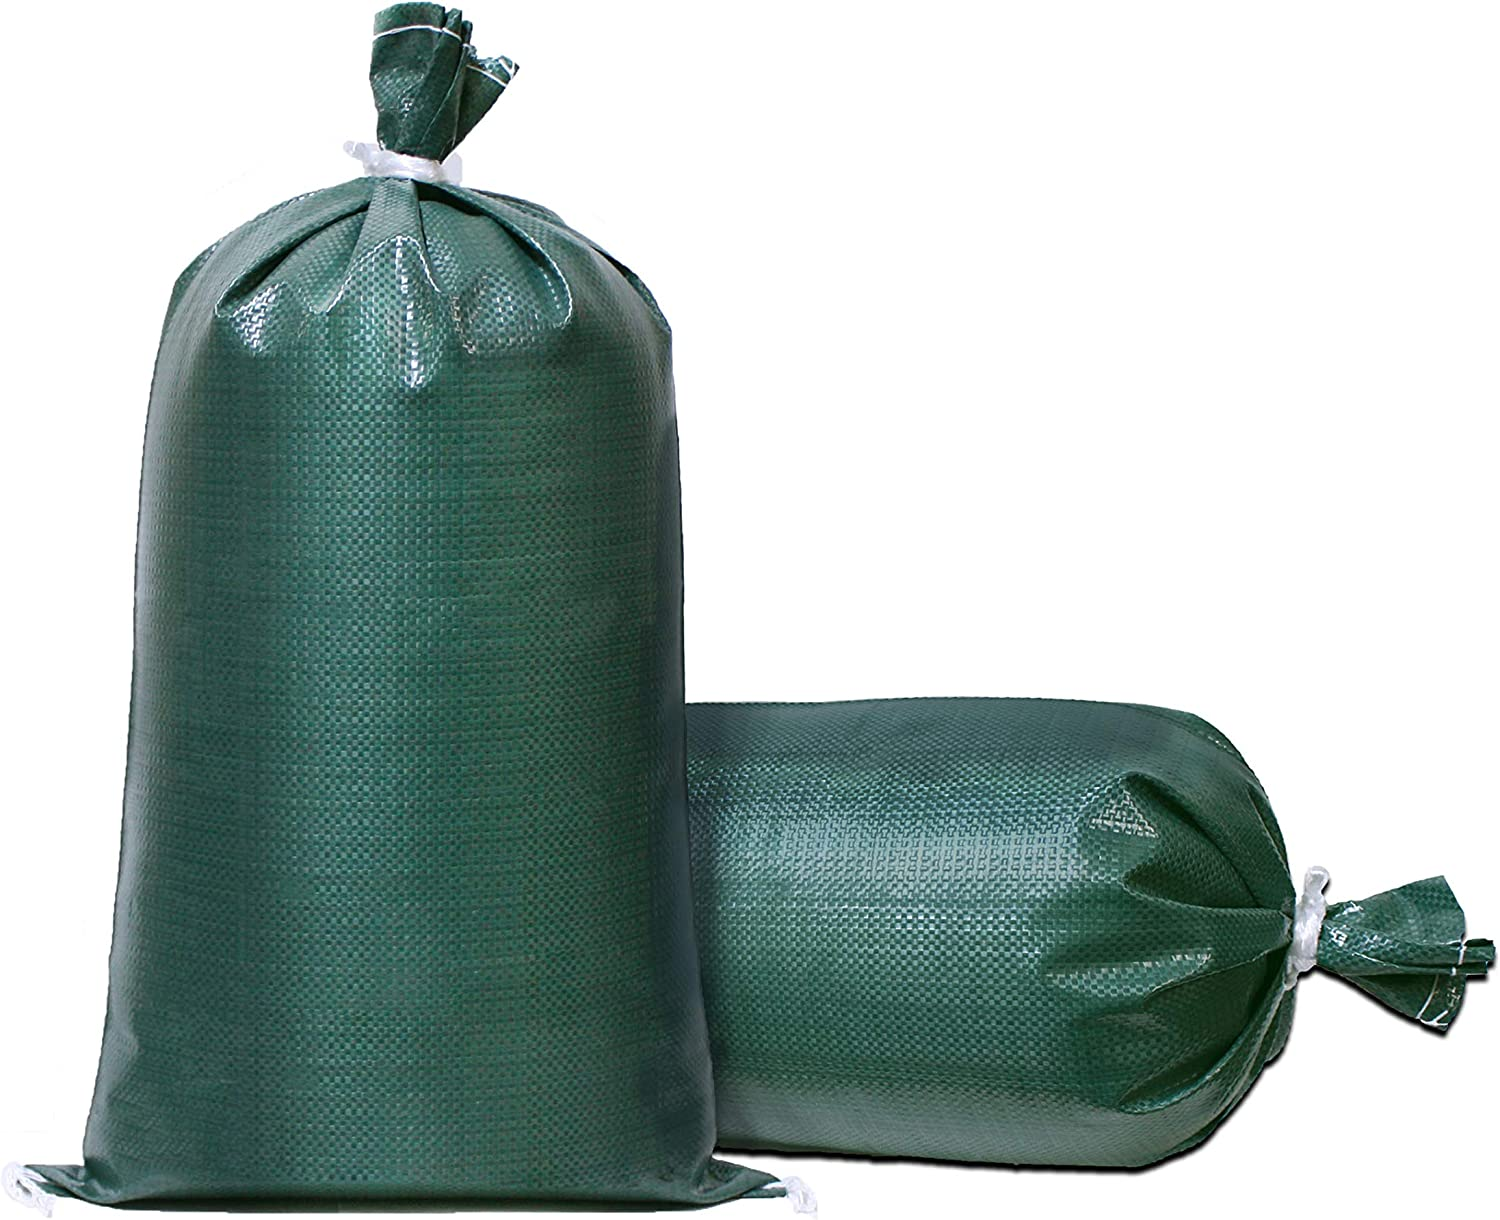 "TerraRight Sandbags - Extra Durable Empty Green Woven Polypropylene Sand Bags w/Ties, Max. UV Protection, 14"" x 26"" (20 Count)"